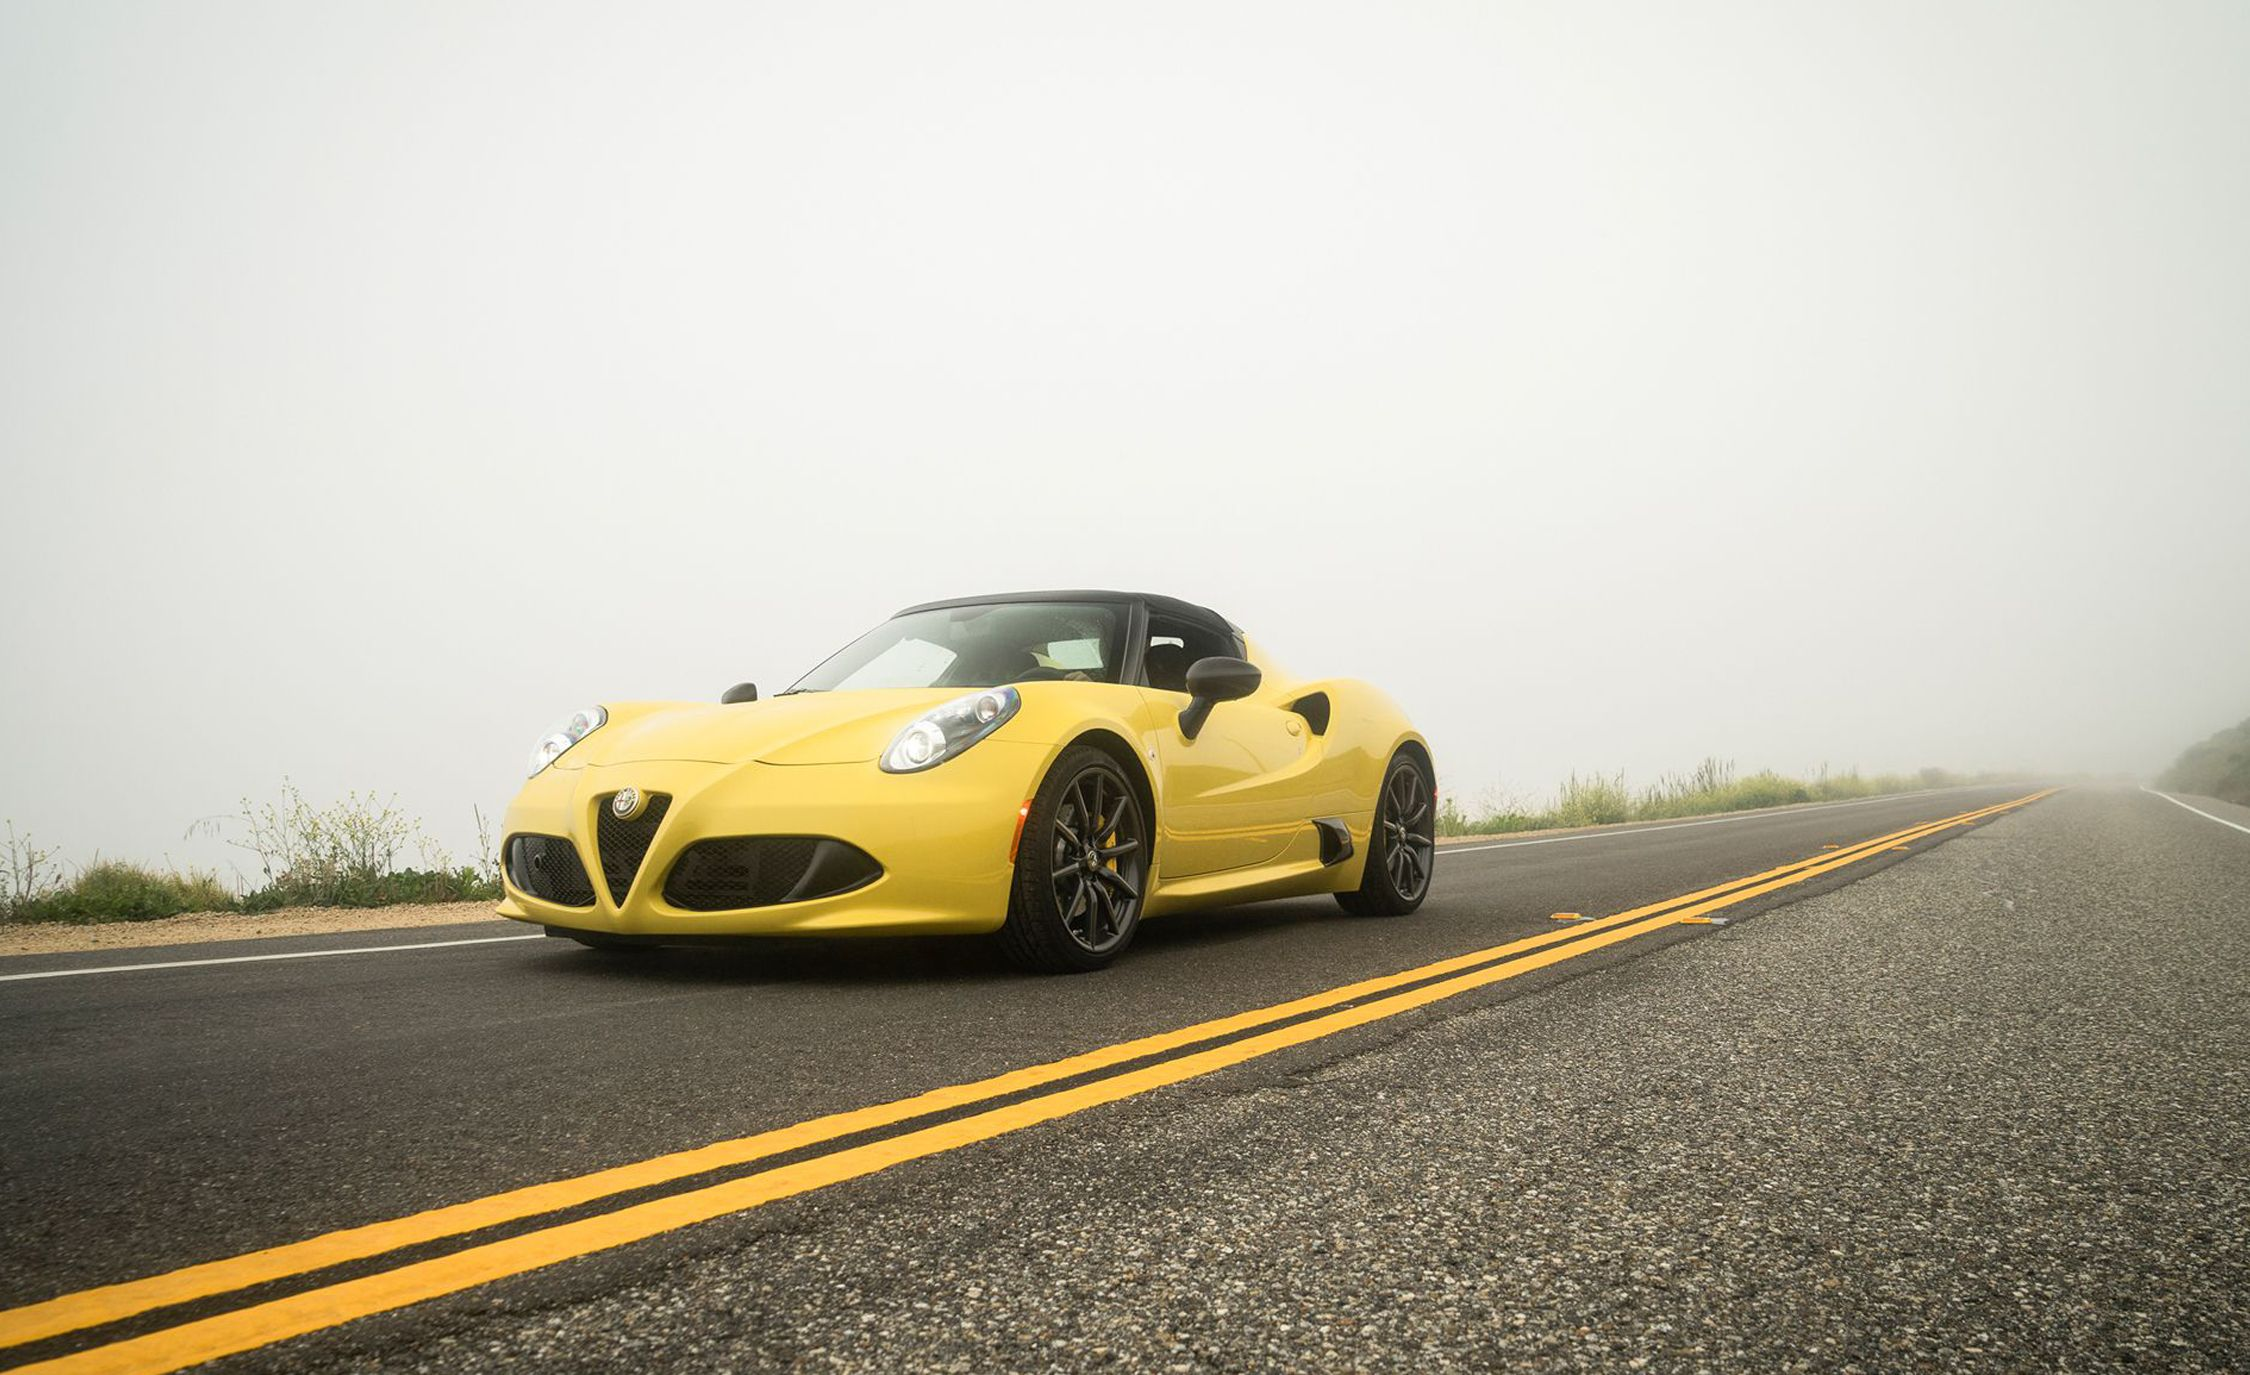 2020 Alfa Romeo 4C Reviews | Alfa Romeo 4C Price, Photos